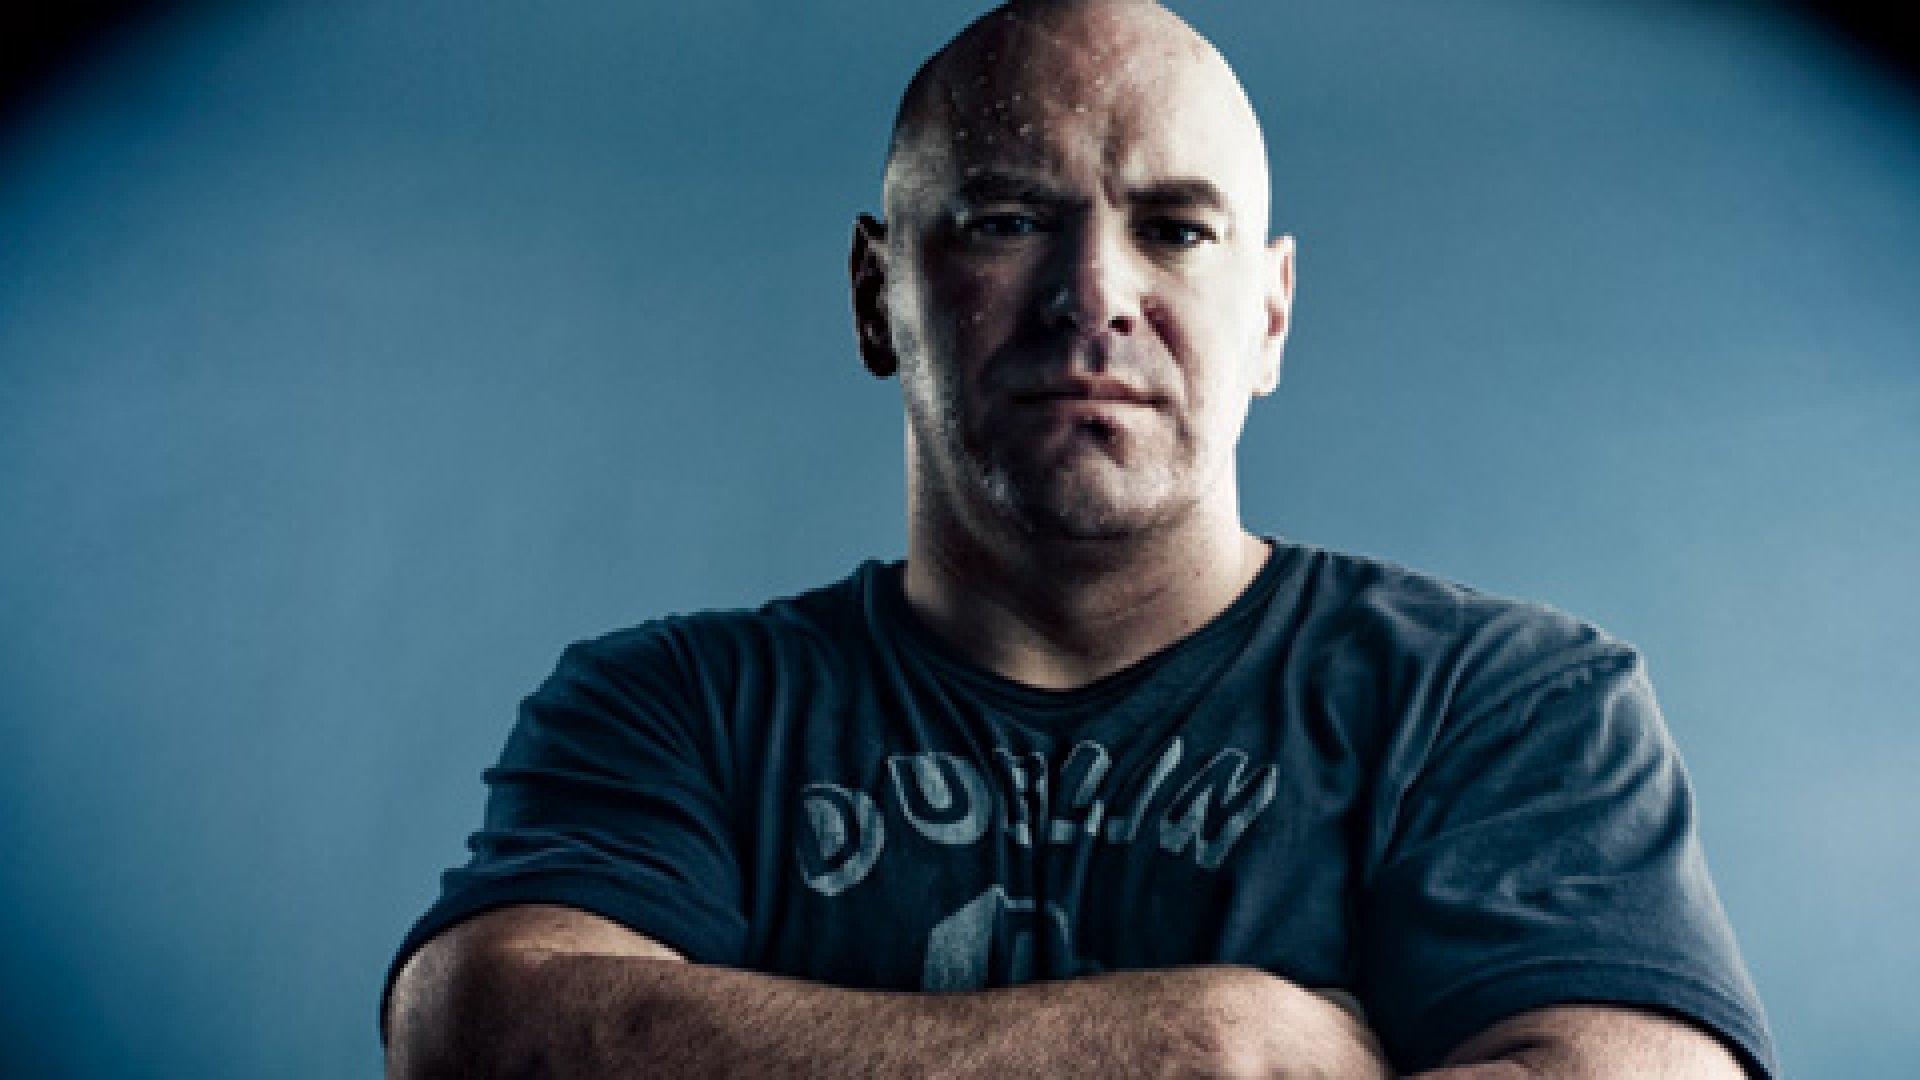 Dana White, President of the Ultimate Fighting Championship, didn't back down to hacker attacks.